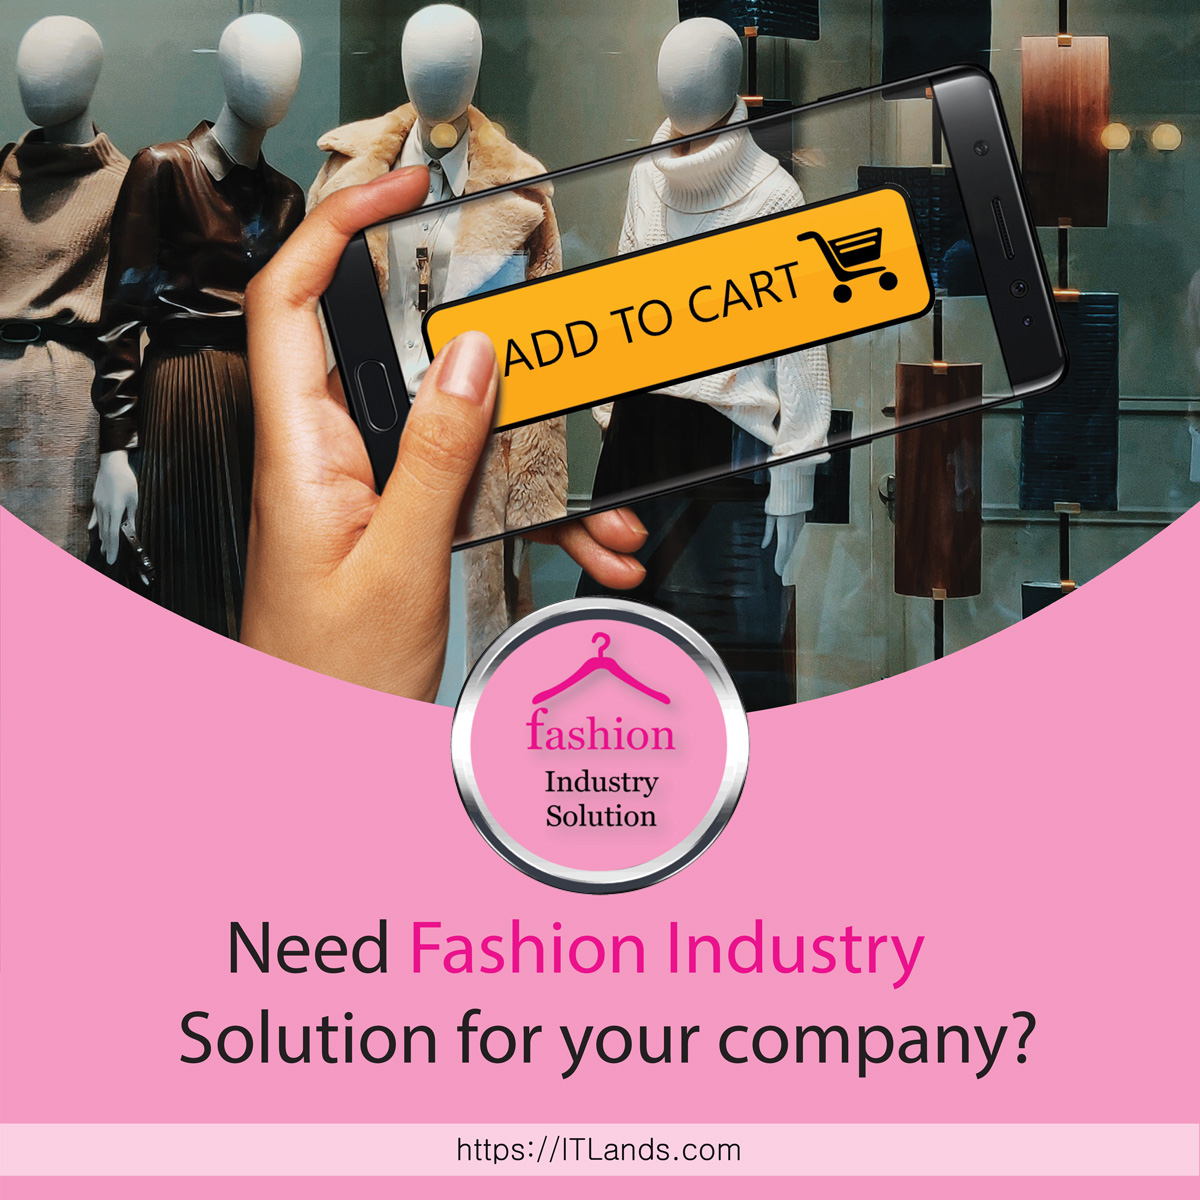 Fashion Industry Solution by ITLands